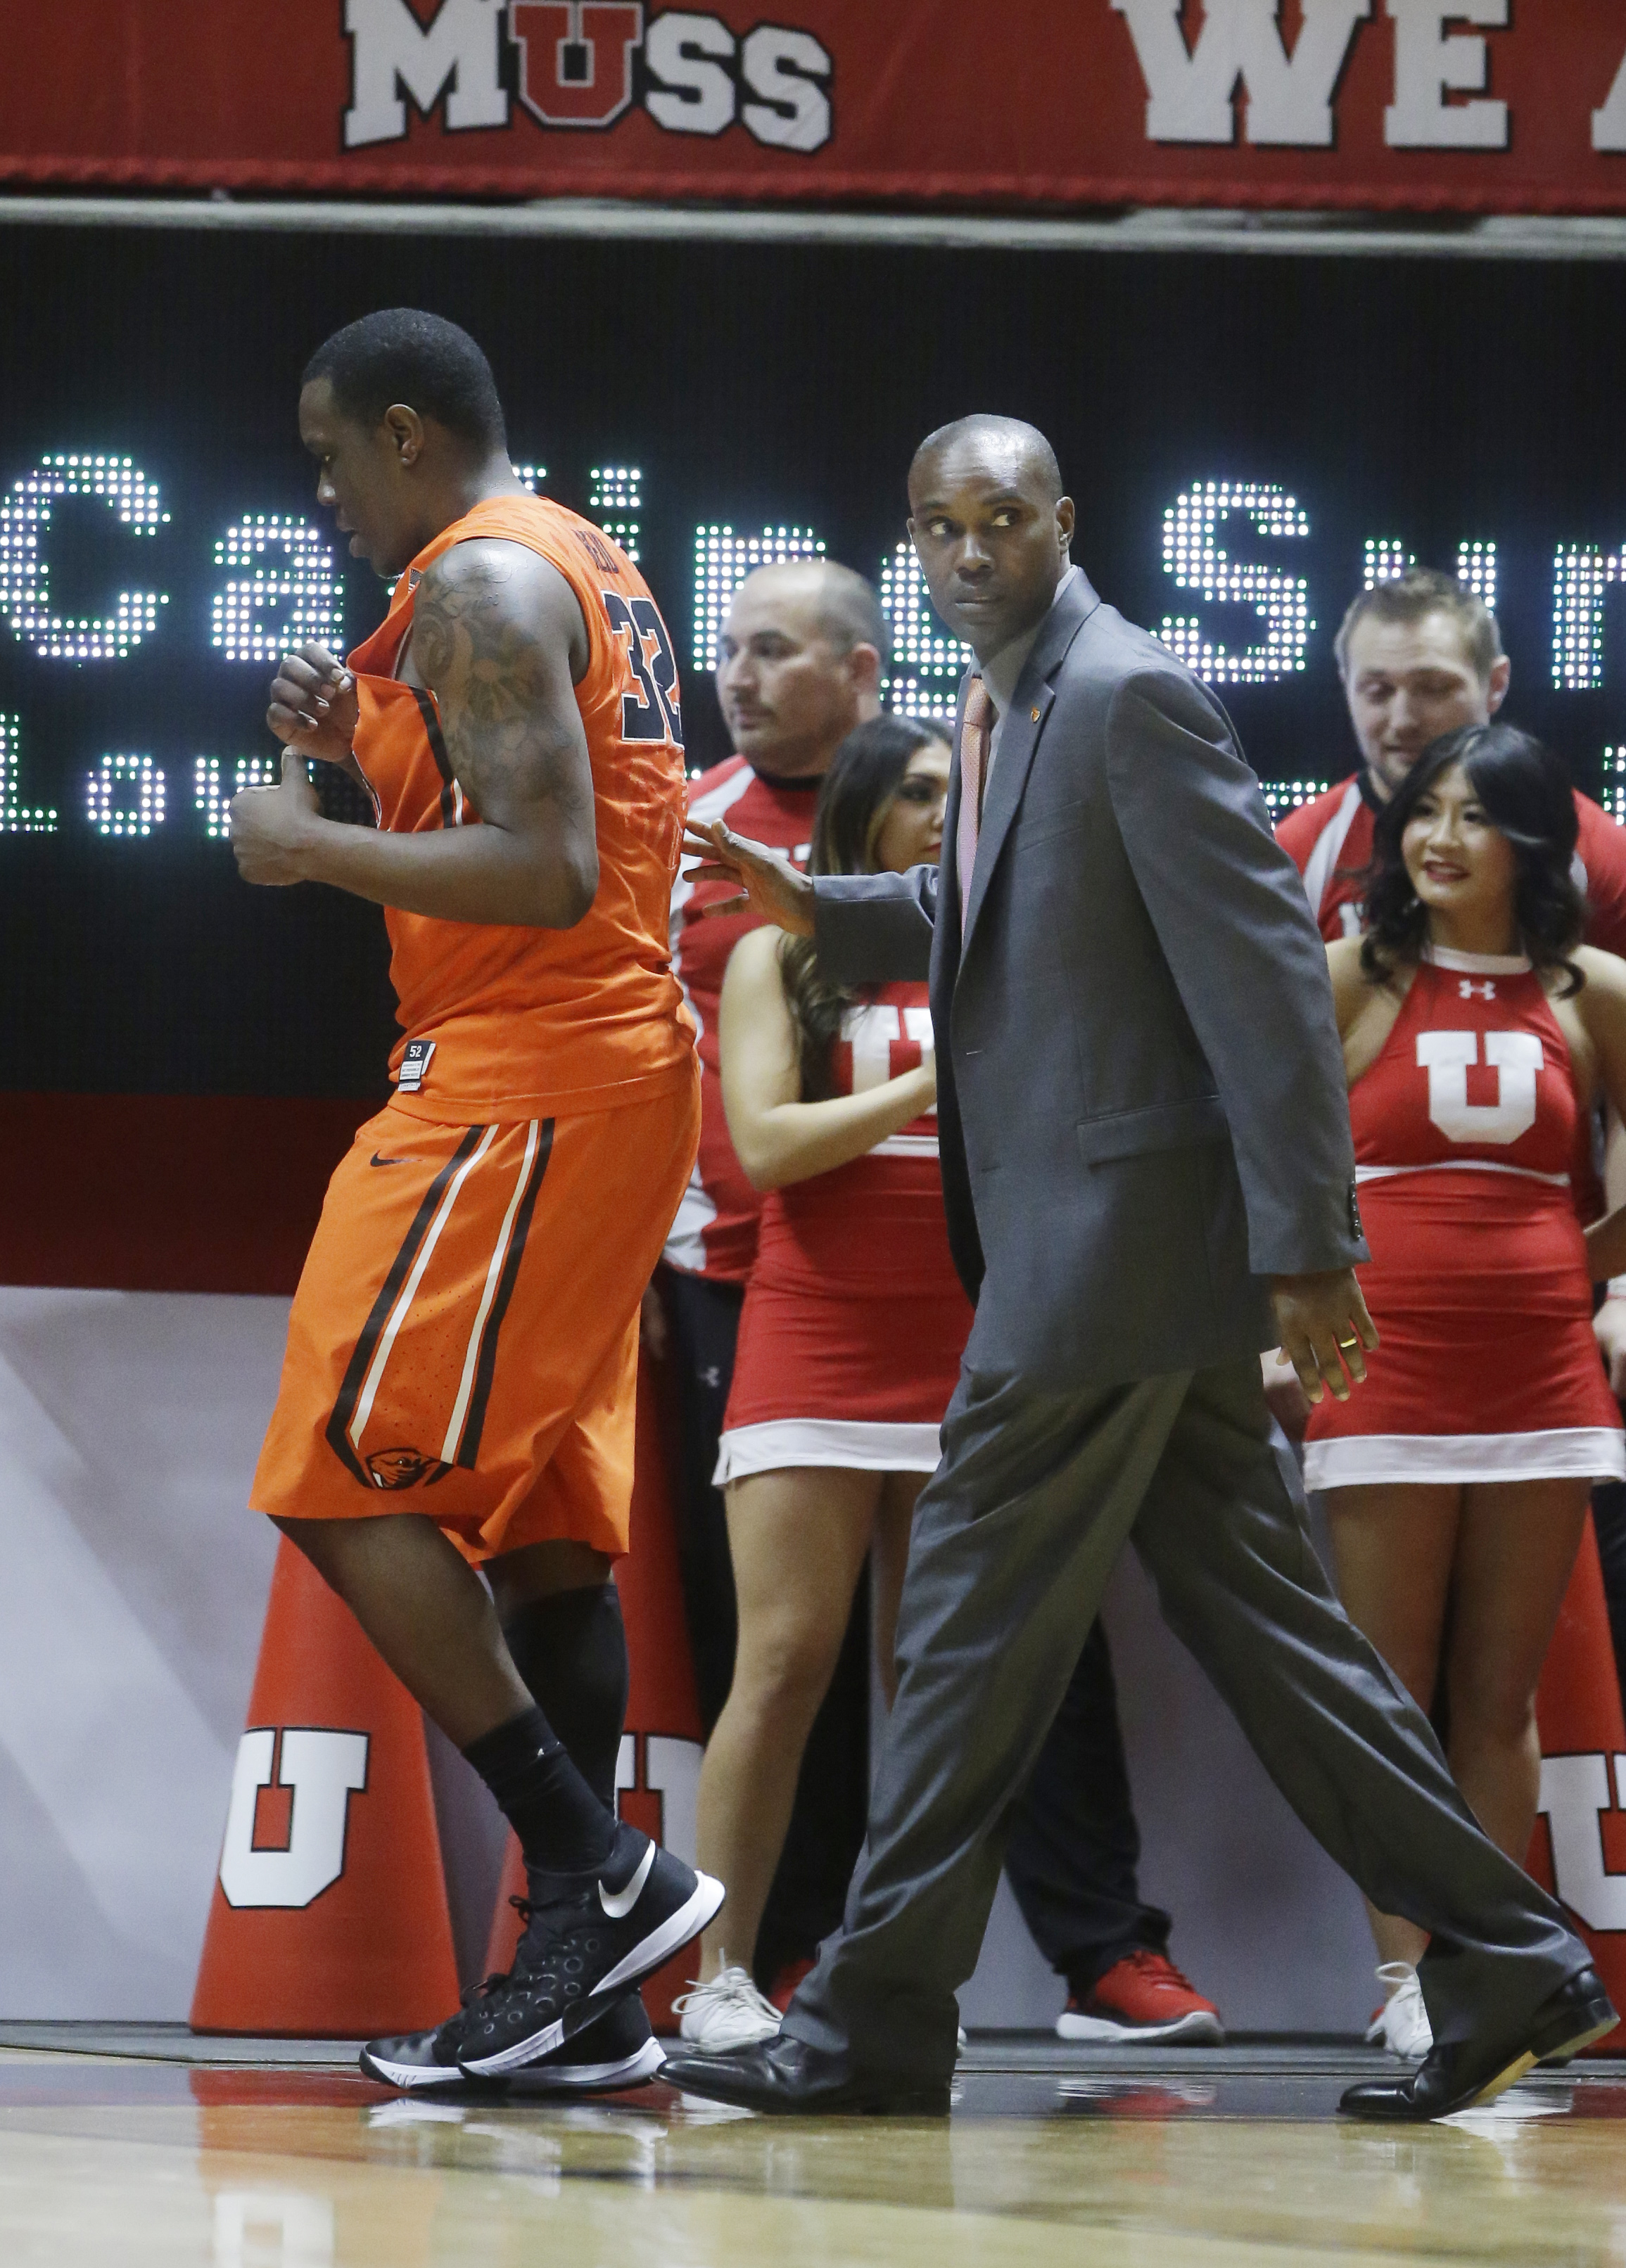 Oregon State forward Jarmal Reid (32) walks off the court after being ejected for tripping a referee during the second half of an NCAA college basketball game Sunday, Jan. 17, 2016, in Salt Lake City. Utah won 59-53. (AP Photo/Rick Bowmer)